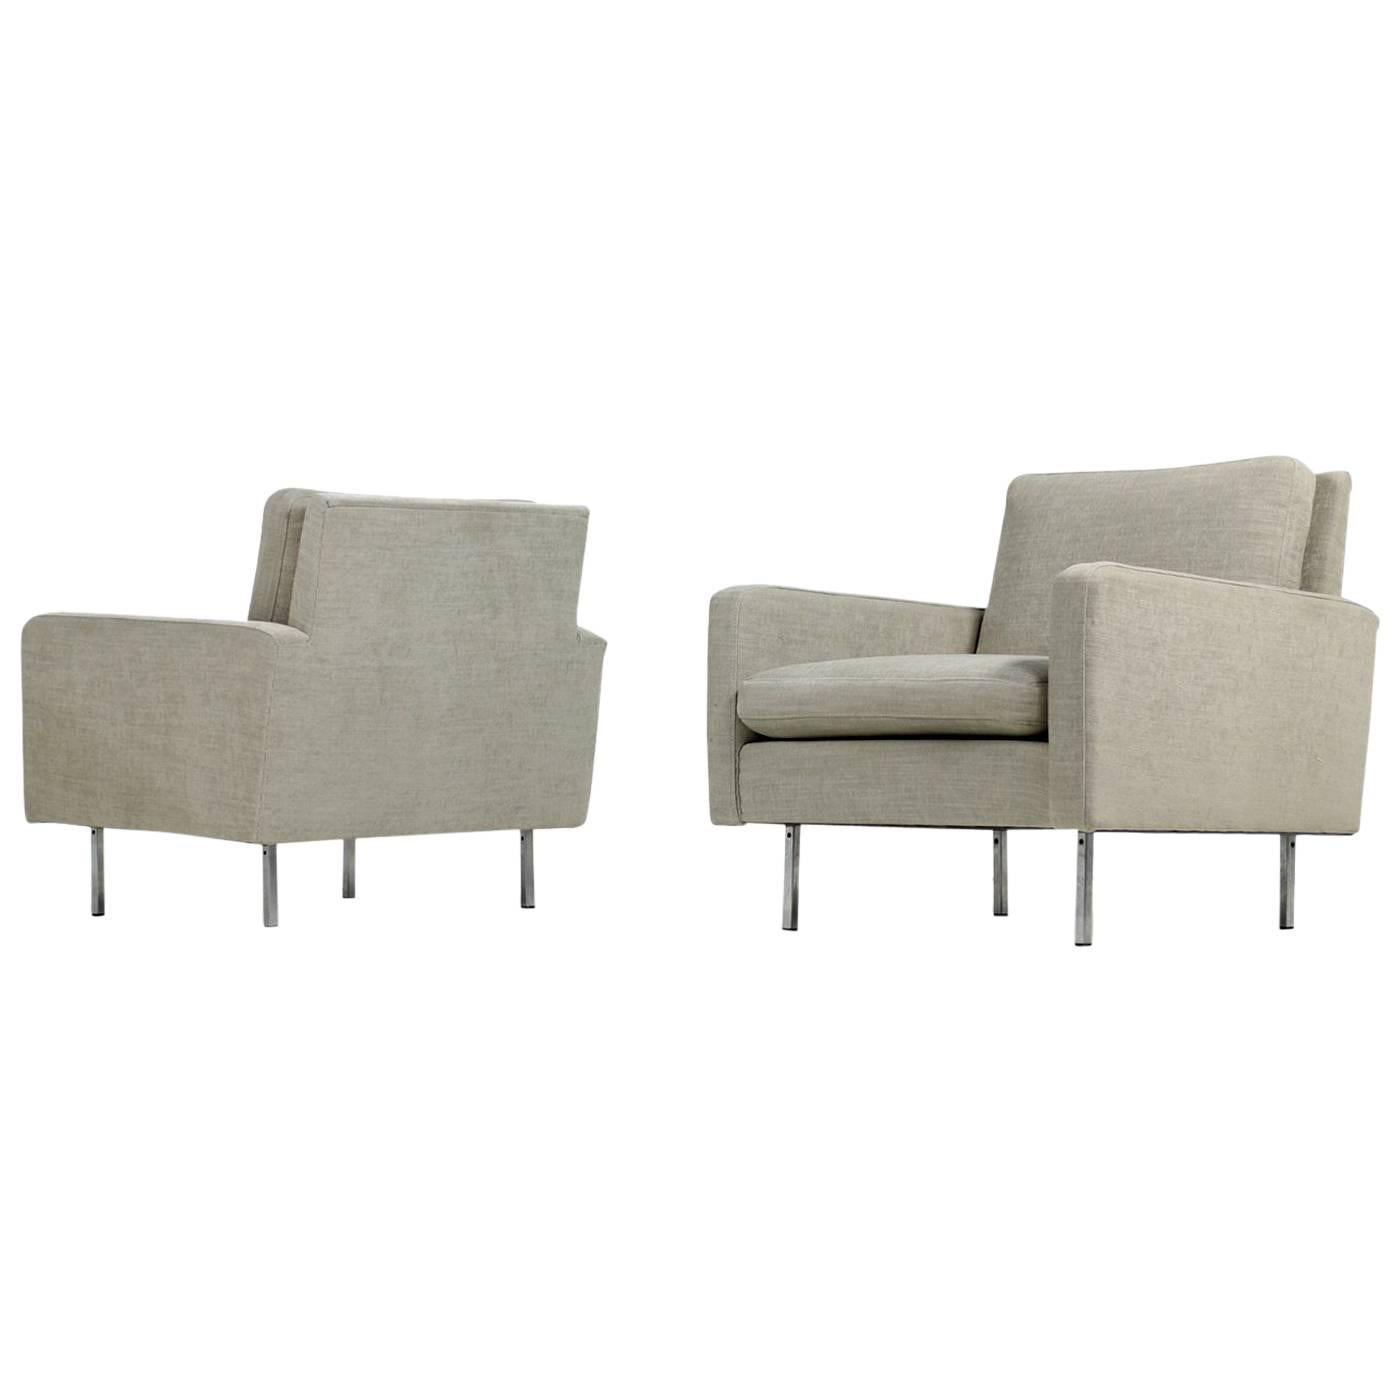 Pair of 1960s Florence Knoll Lounge Chairs Model 25 BC for Knoll International